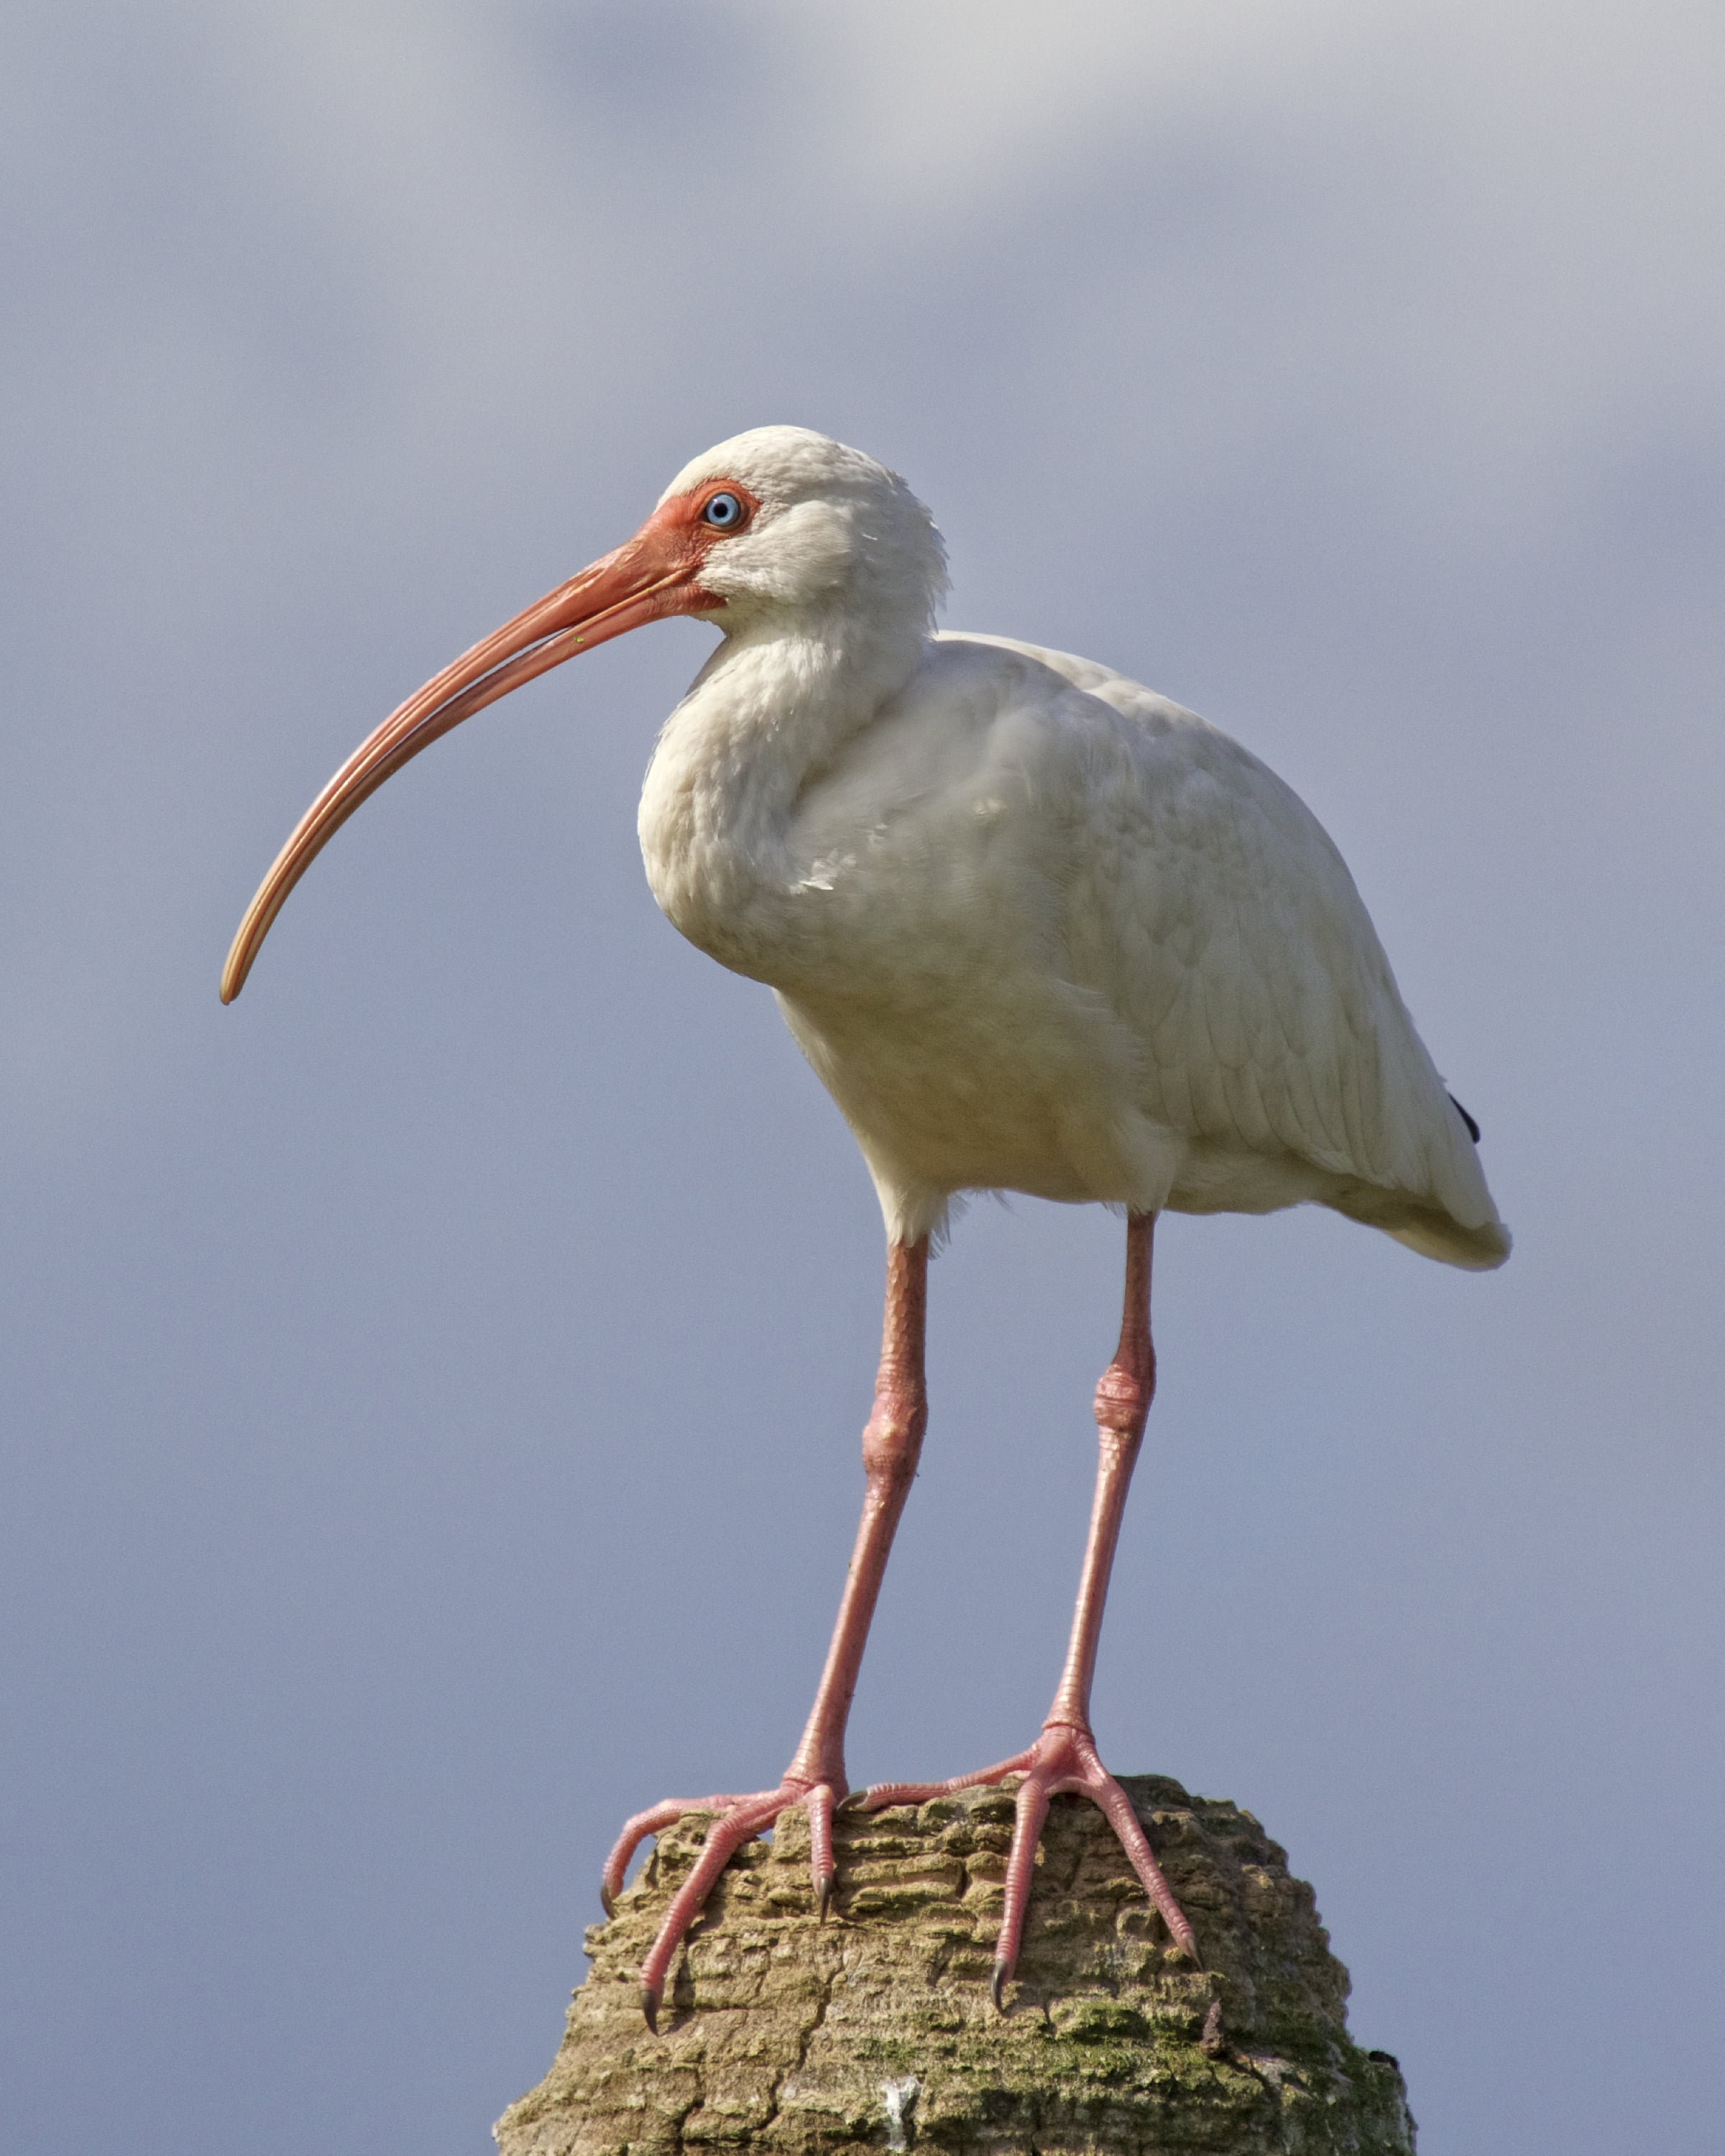 Ole Blue Eyes, the White Ibis says see ya later..watch out for the Gator!